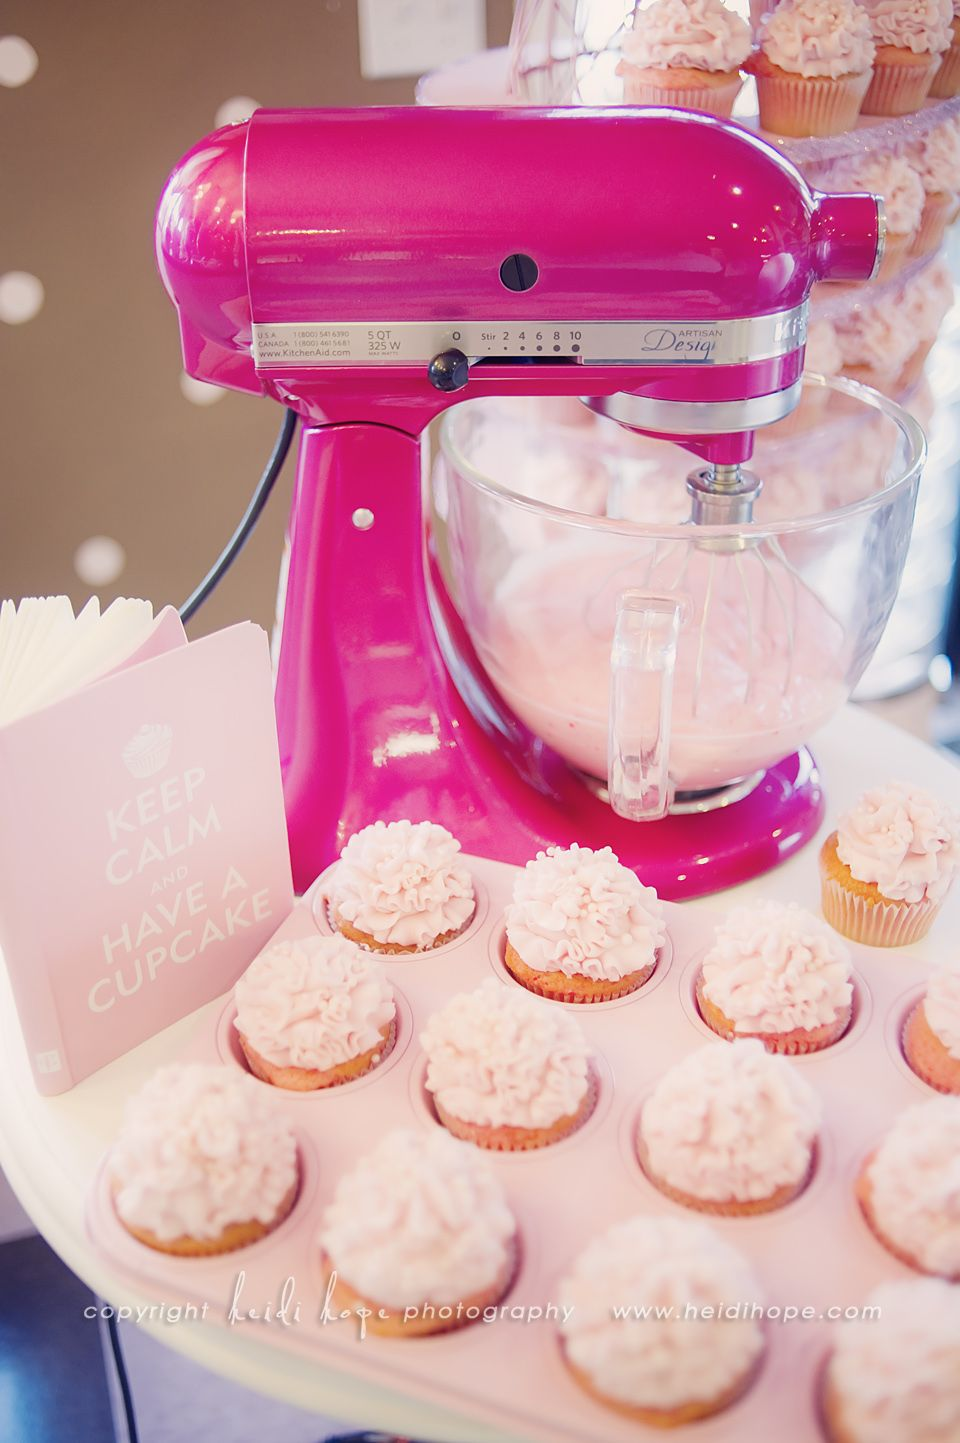 Finally The Perfect Kitchenaid Mixer For Me I Must Have This Beauty 0 Raspberry Ice It Will Be For Me So G Pink Kitchen Pink Kitchenaid Mixer Kitchen Aid